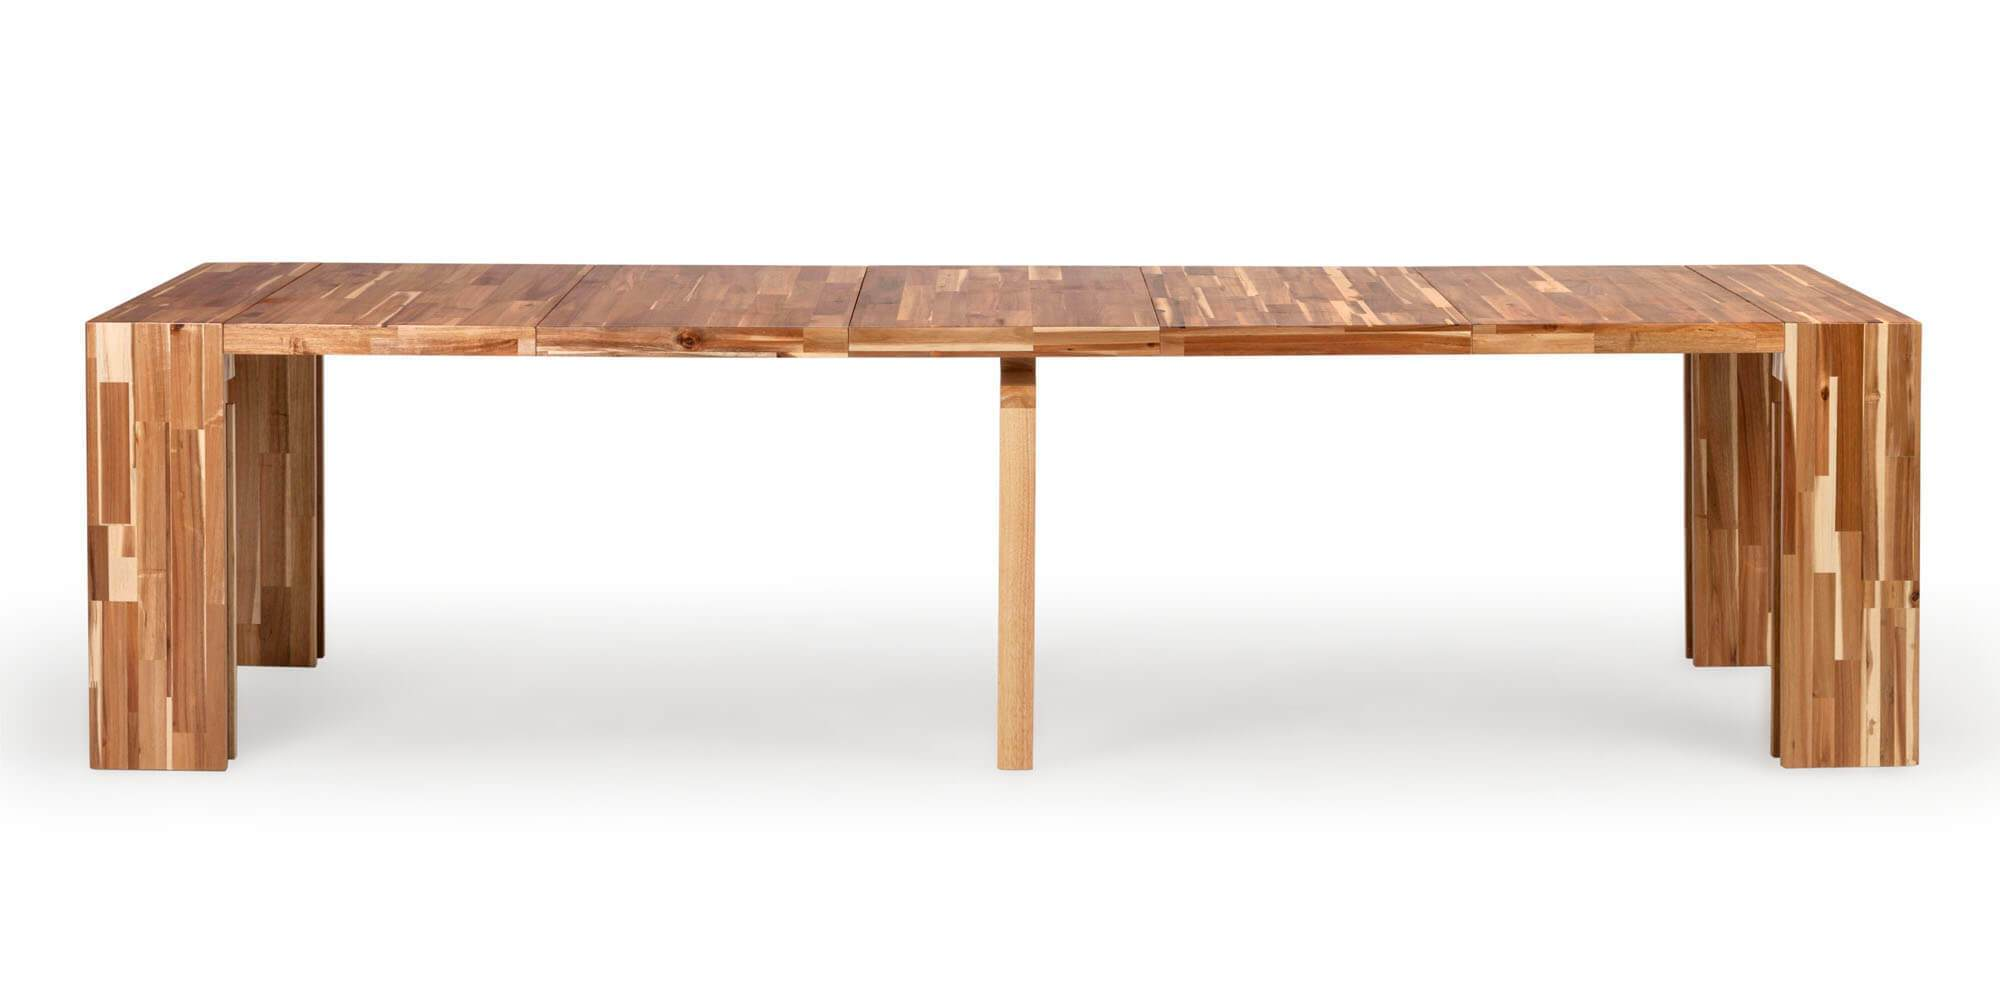 Transformer Table 2.0 + Natural Acacia